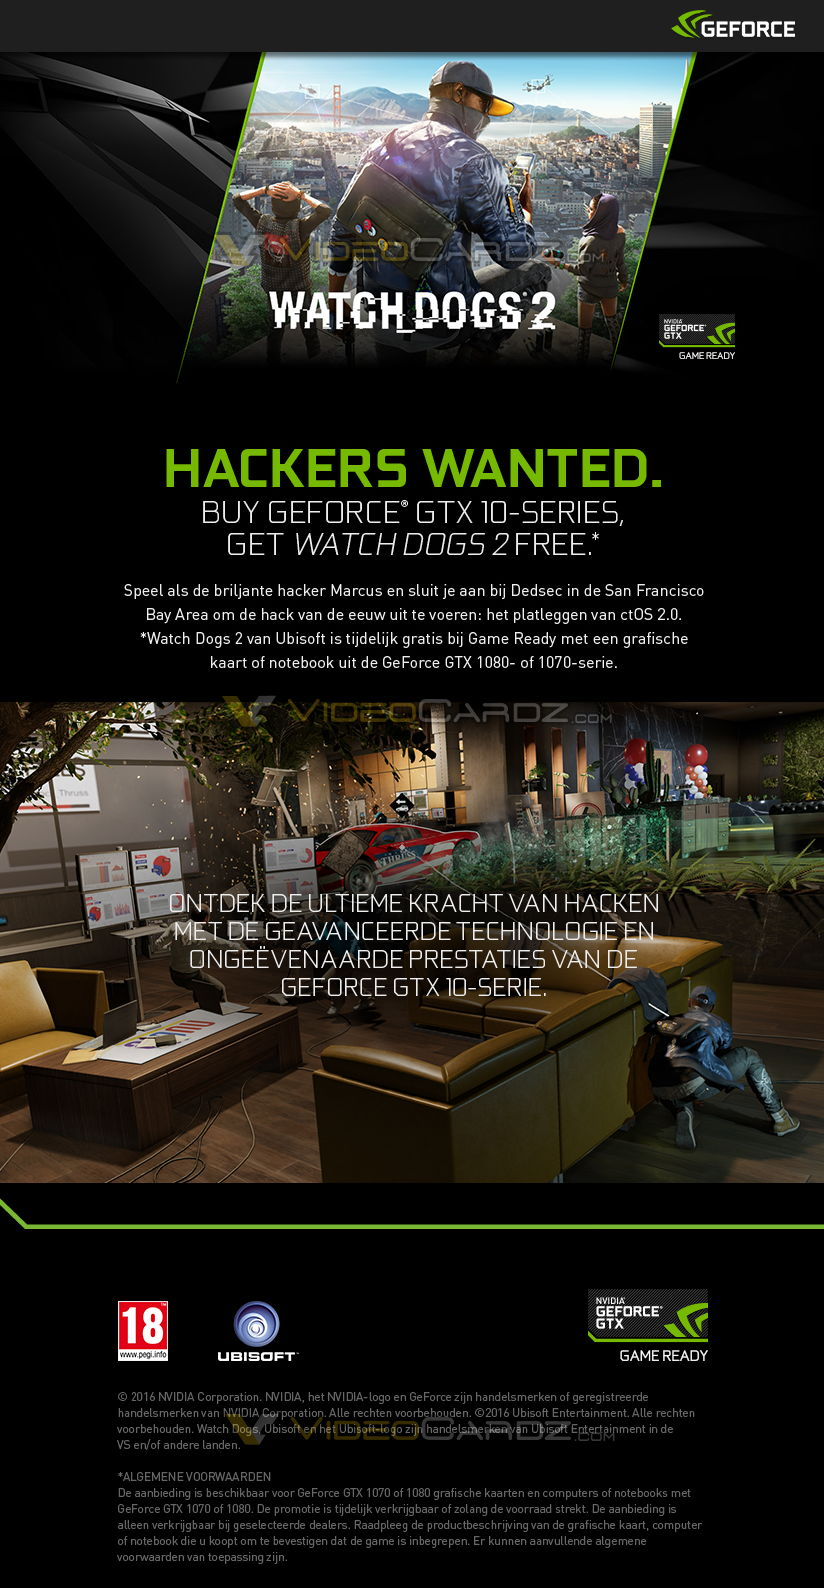 NVIDIA & Ubisoft Give Away Watch Dogs 2 If You Buy GTX1080